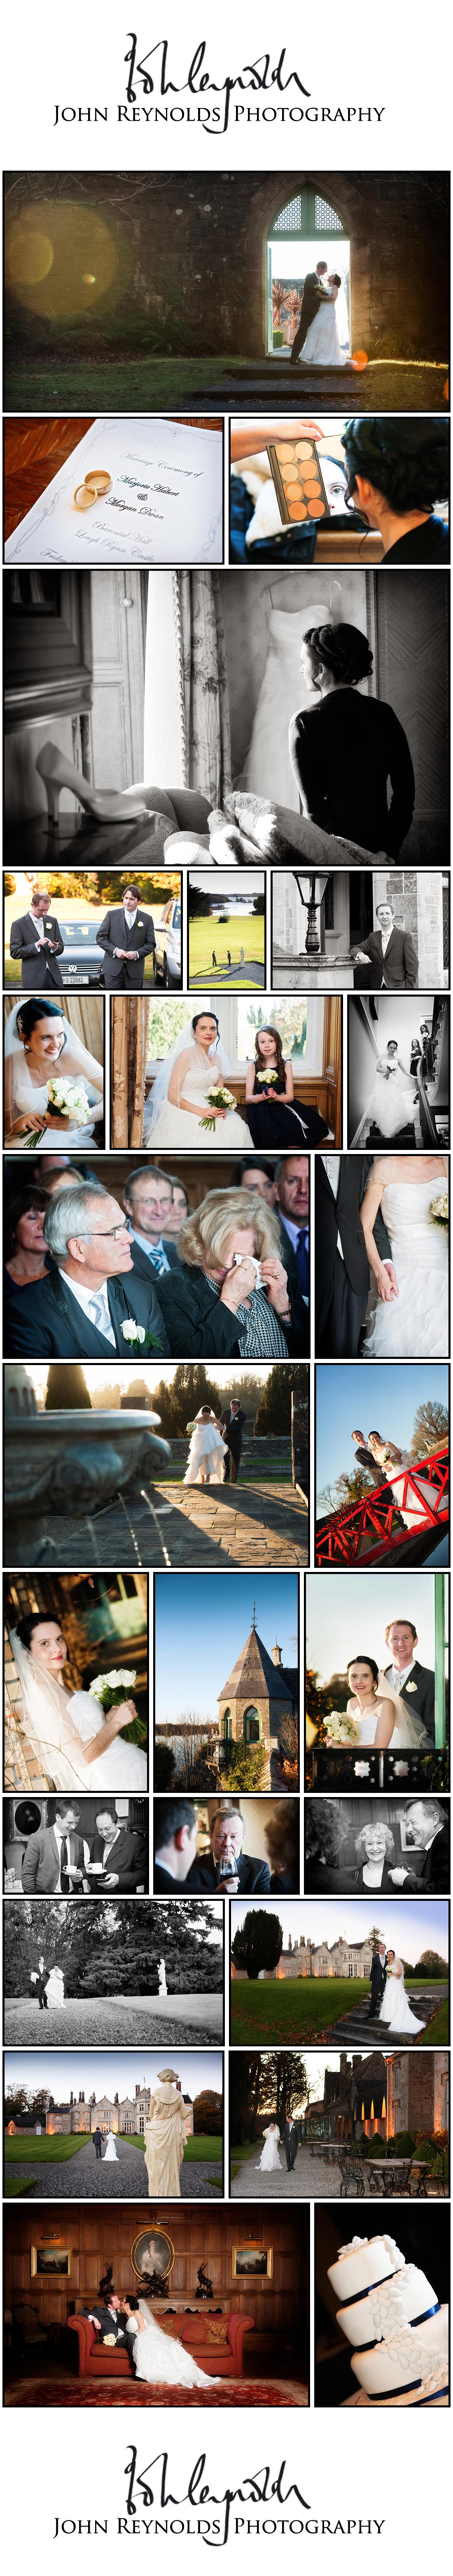 Blog Collage-Marjorie & Morgan